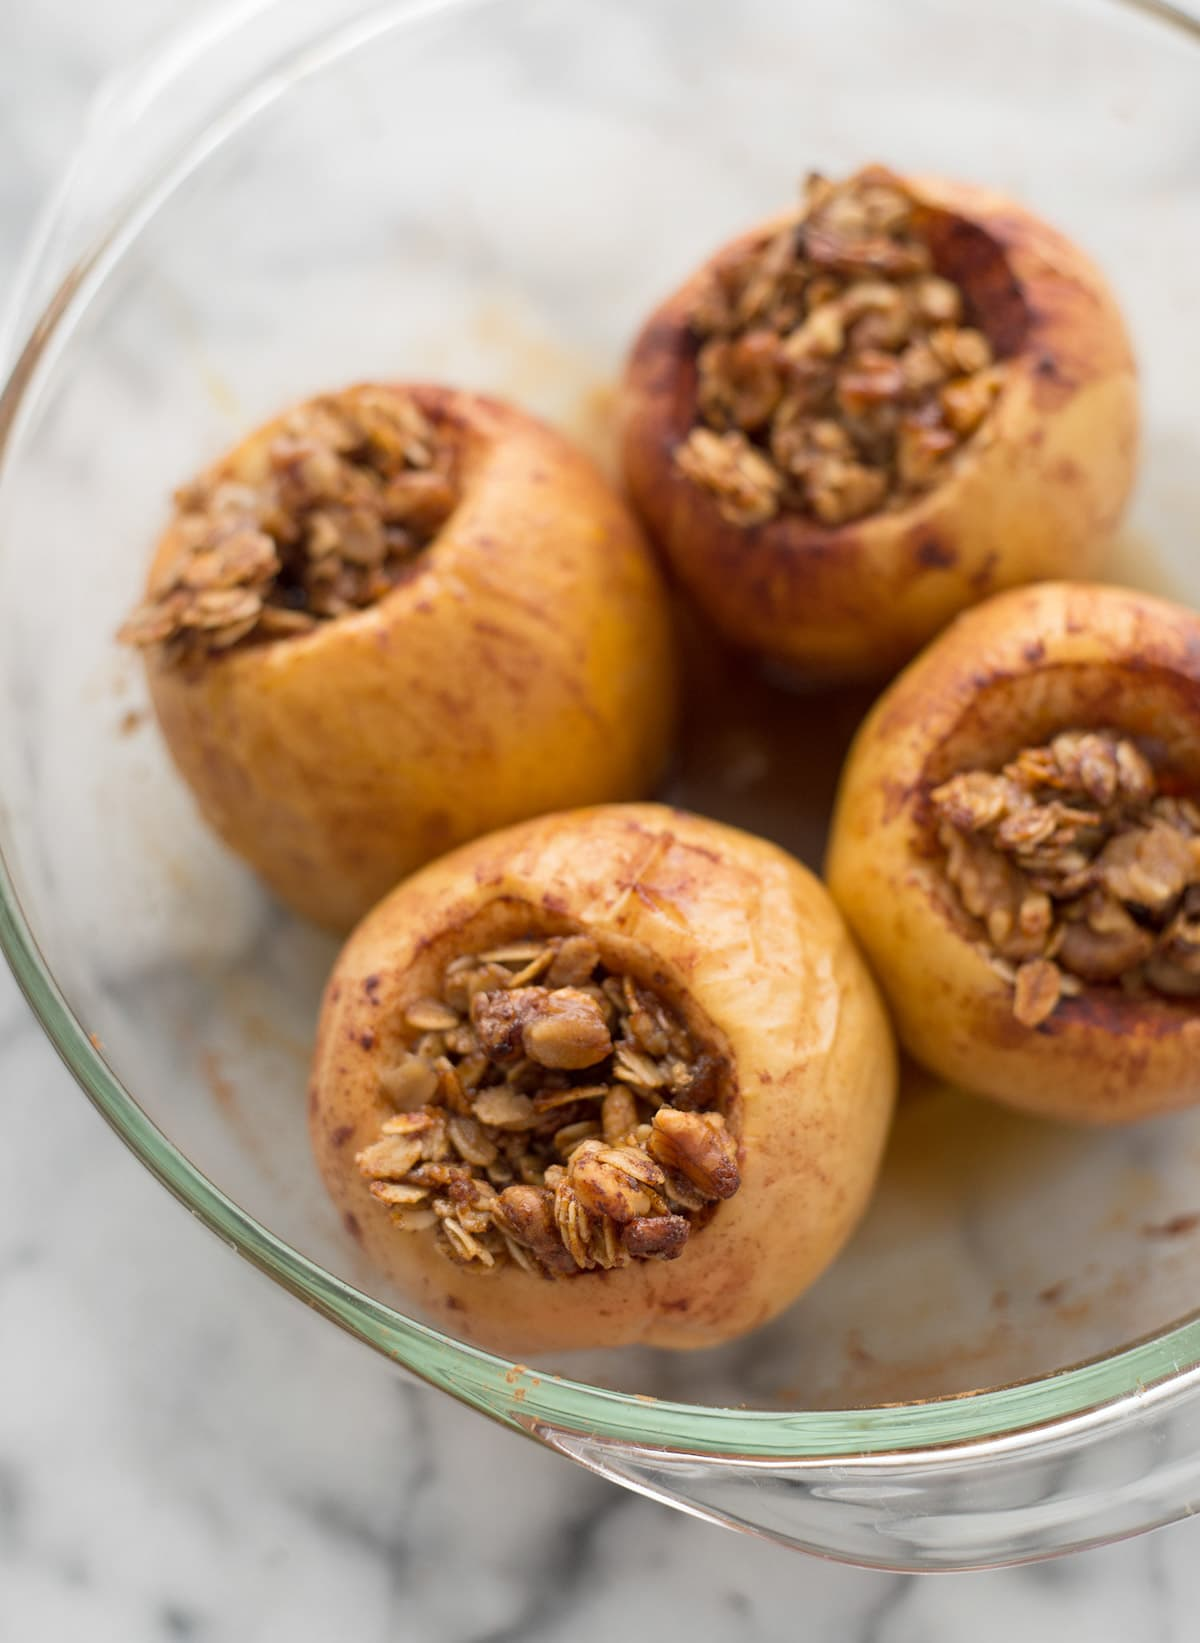 Baked Apples with Spiced Granola and Yogurt - Sugar & Cloth - Houston Blogger - Fall - Recipe